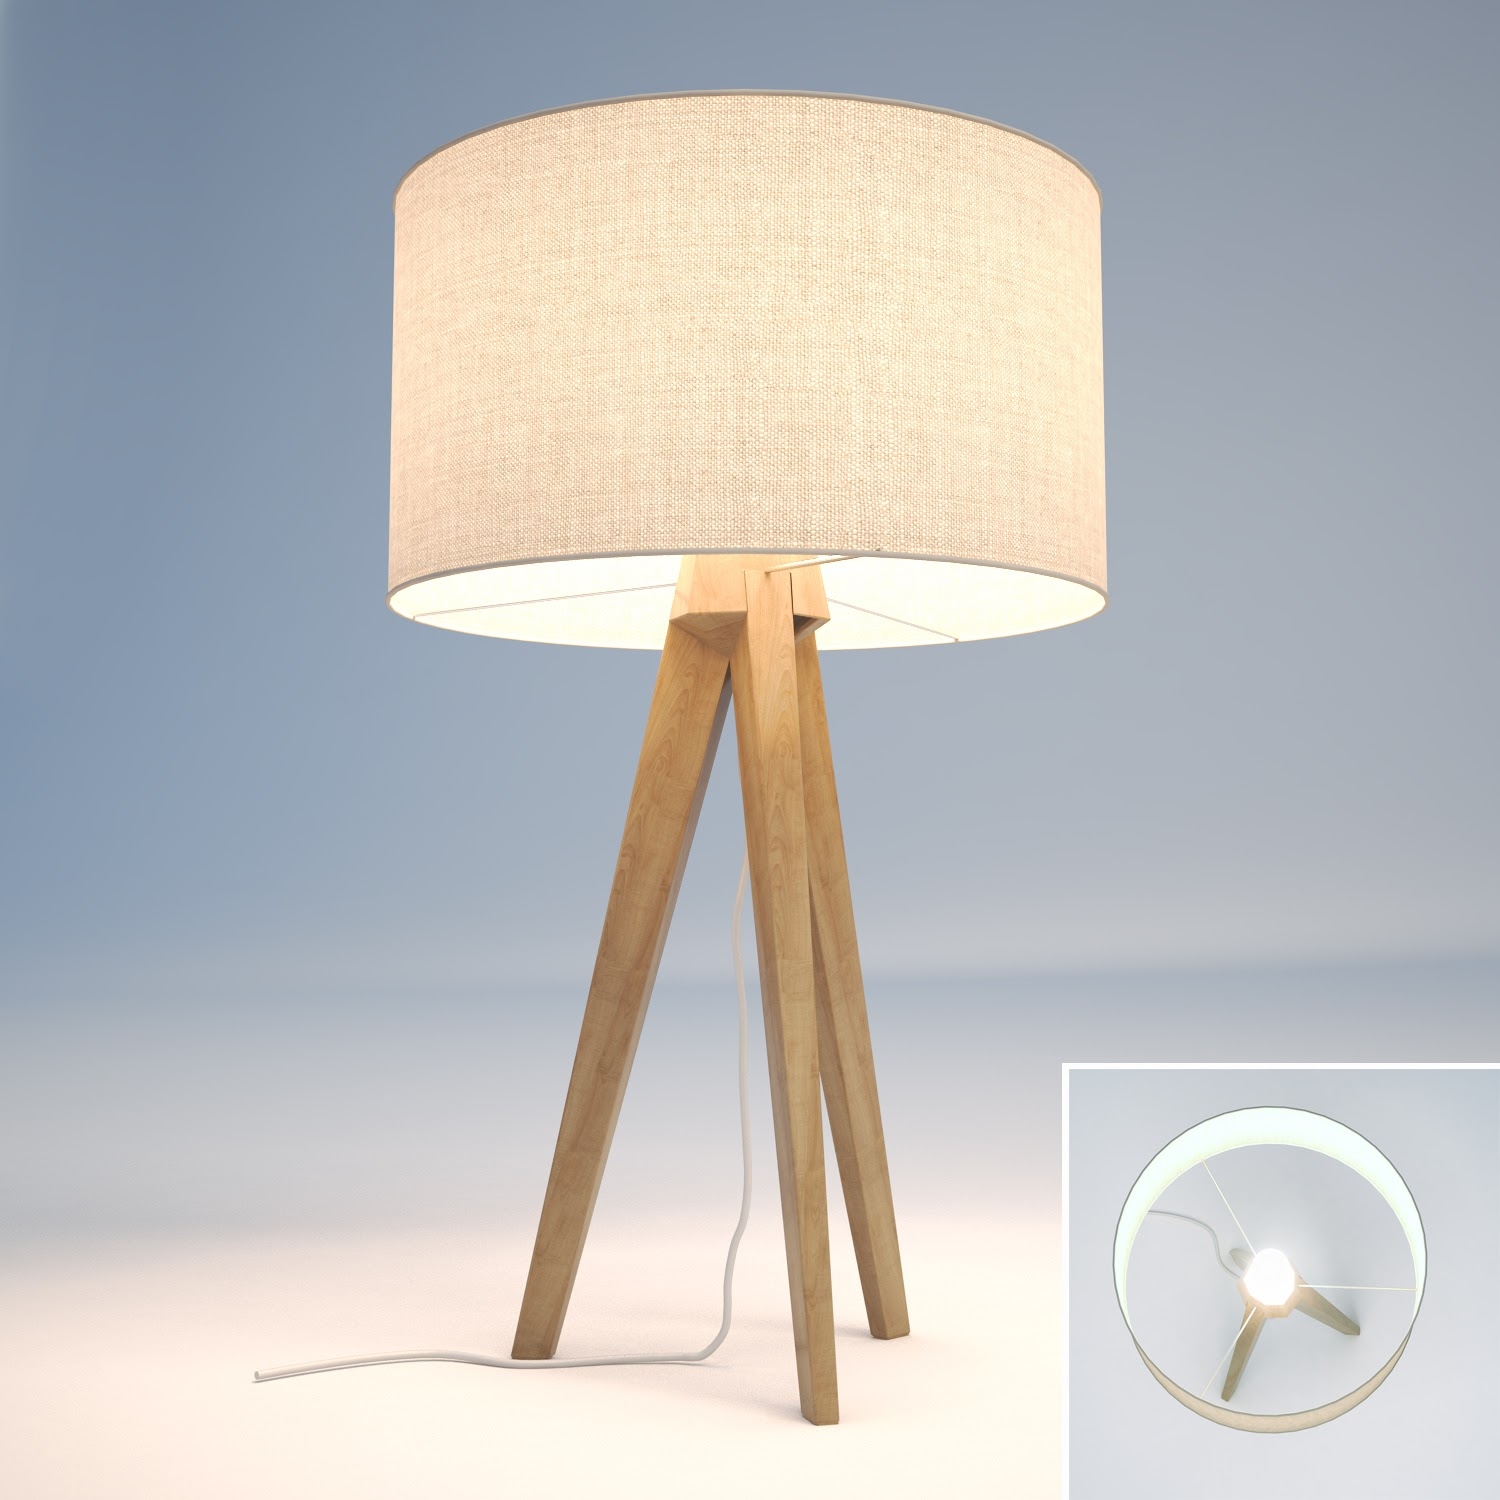 Wall Lamps 3d Model Free : 3D Model Free: [3D Model Free] Table lamp